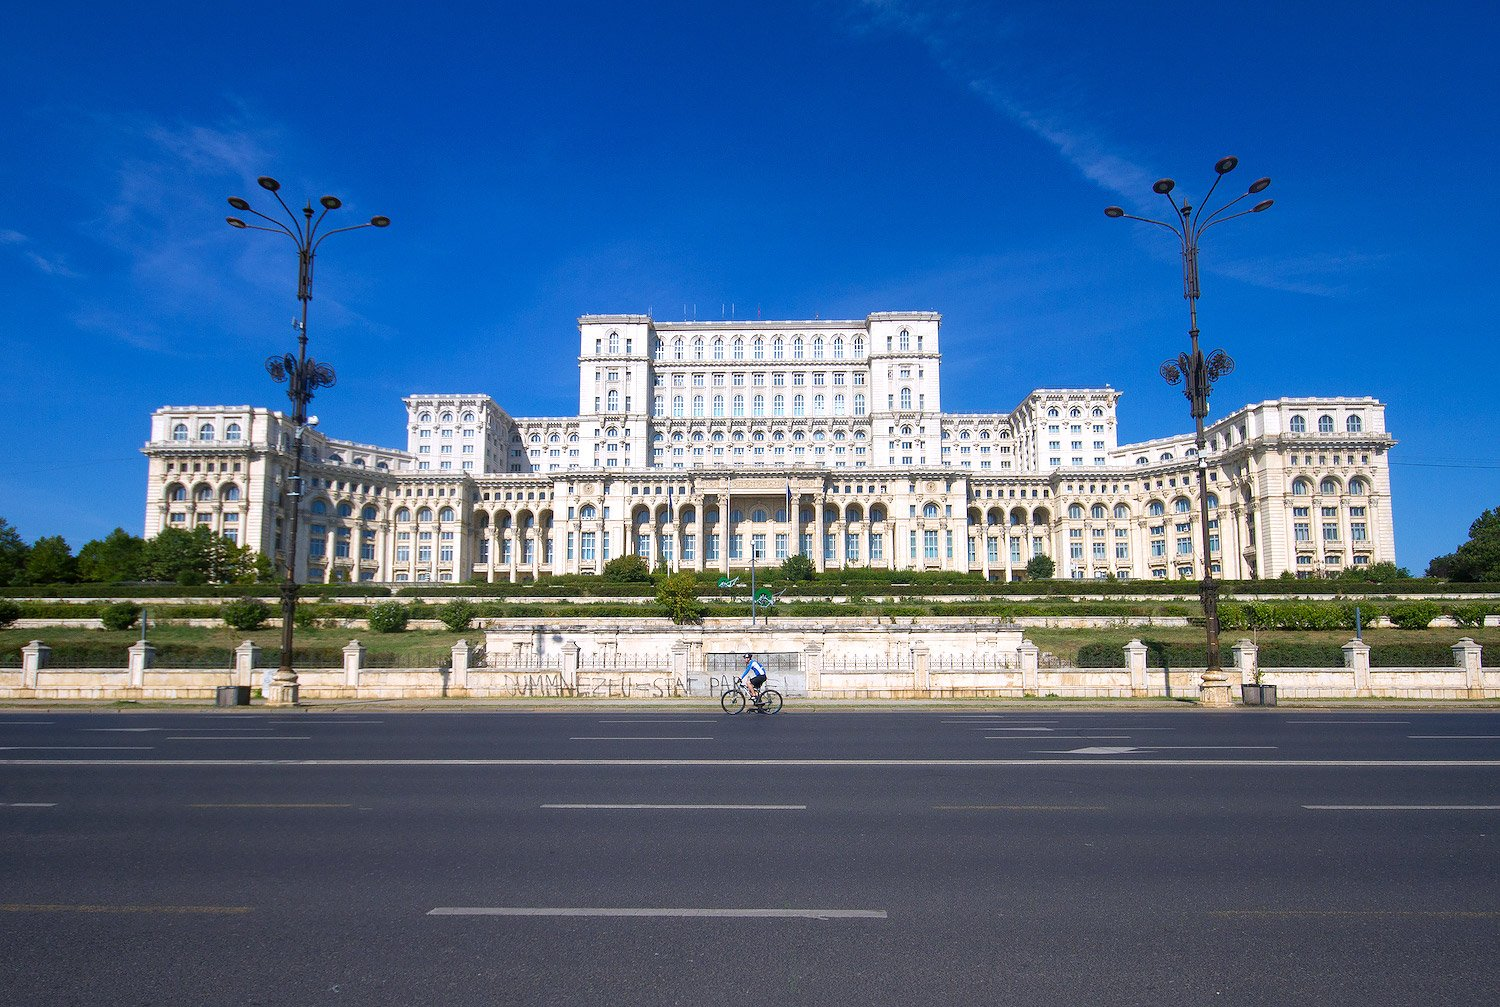 5-minute guide to Bucharest: monumental opulence meets buzzing artistic vibes in Romania's capital